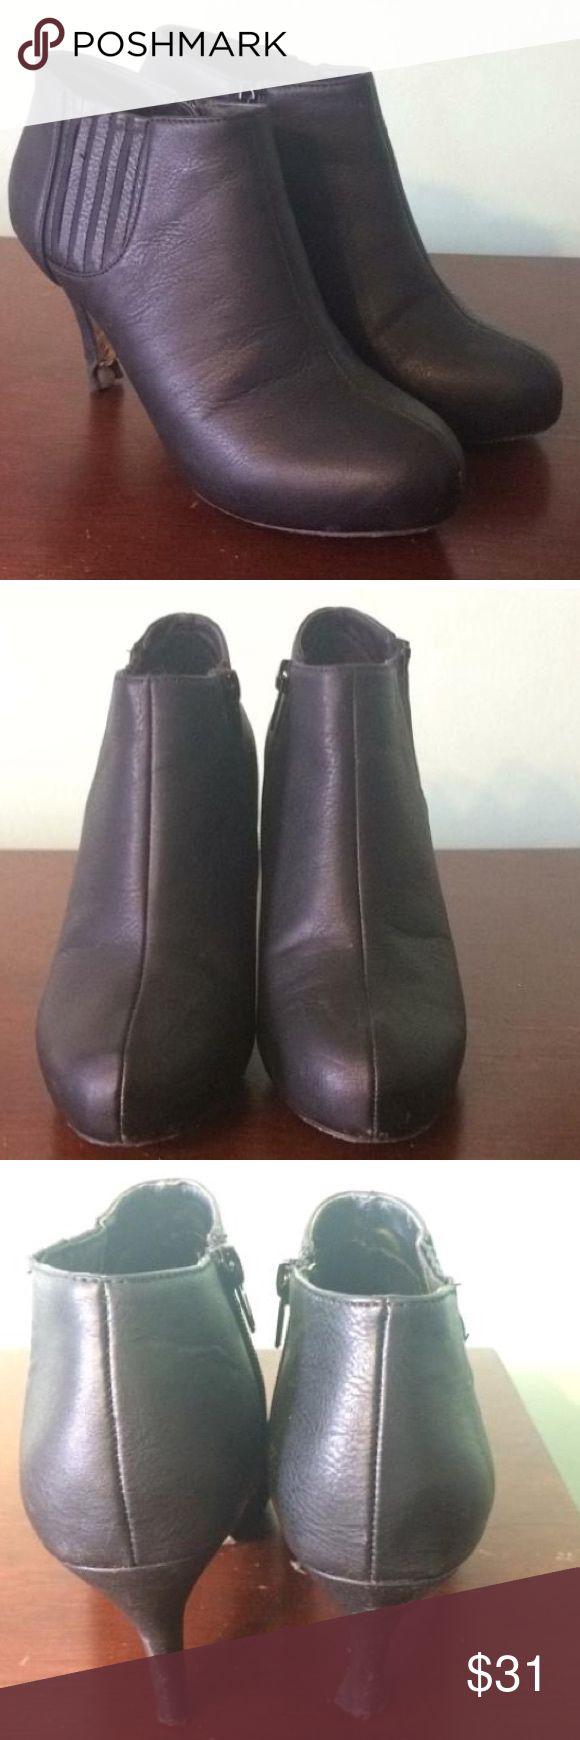 Madden girl size 6.5 cute bootie heel! Has a strip on the inside to avoid blisters being created! Worn, but great pair to wear after rain since you can easily wash off mud or dirt. Good pair to have for not caring what happens to them. Please consider and enjoy! Madden Girl Shoes Heels